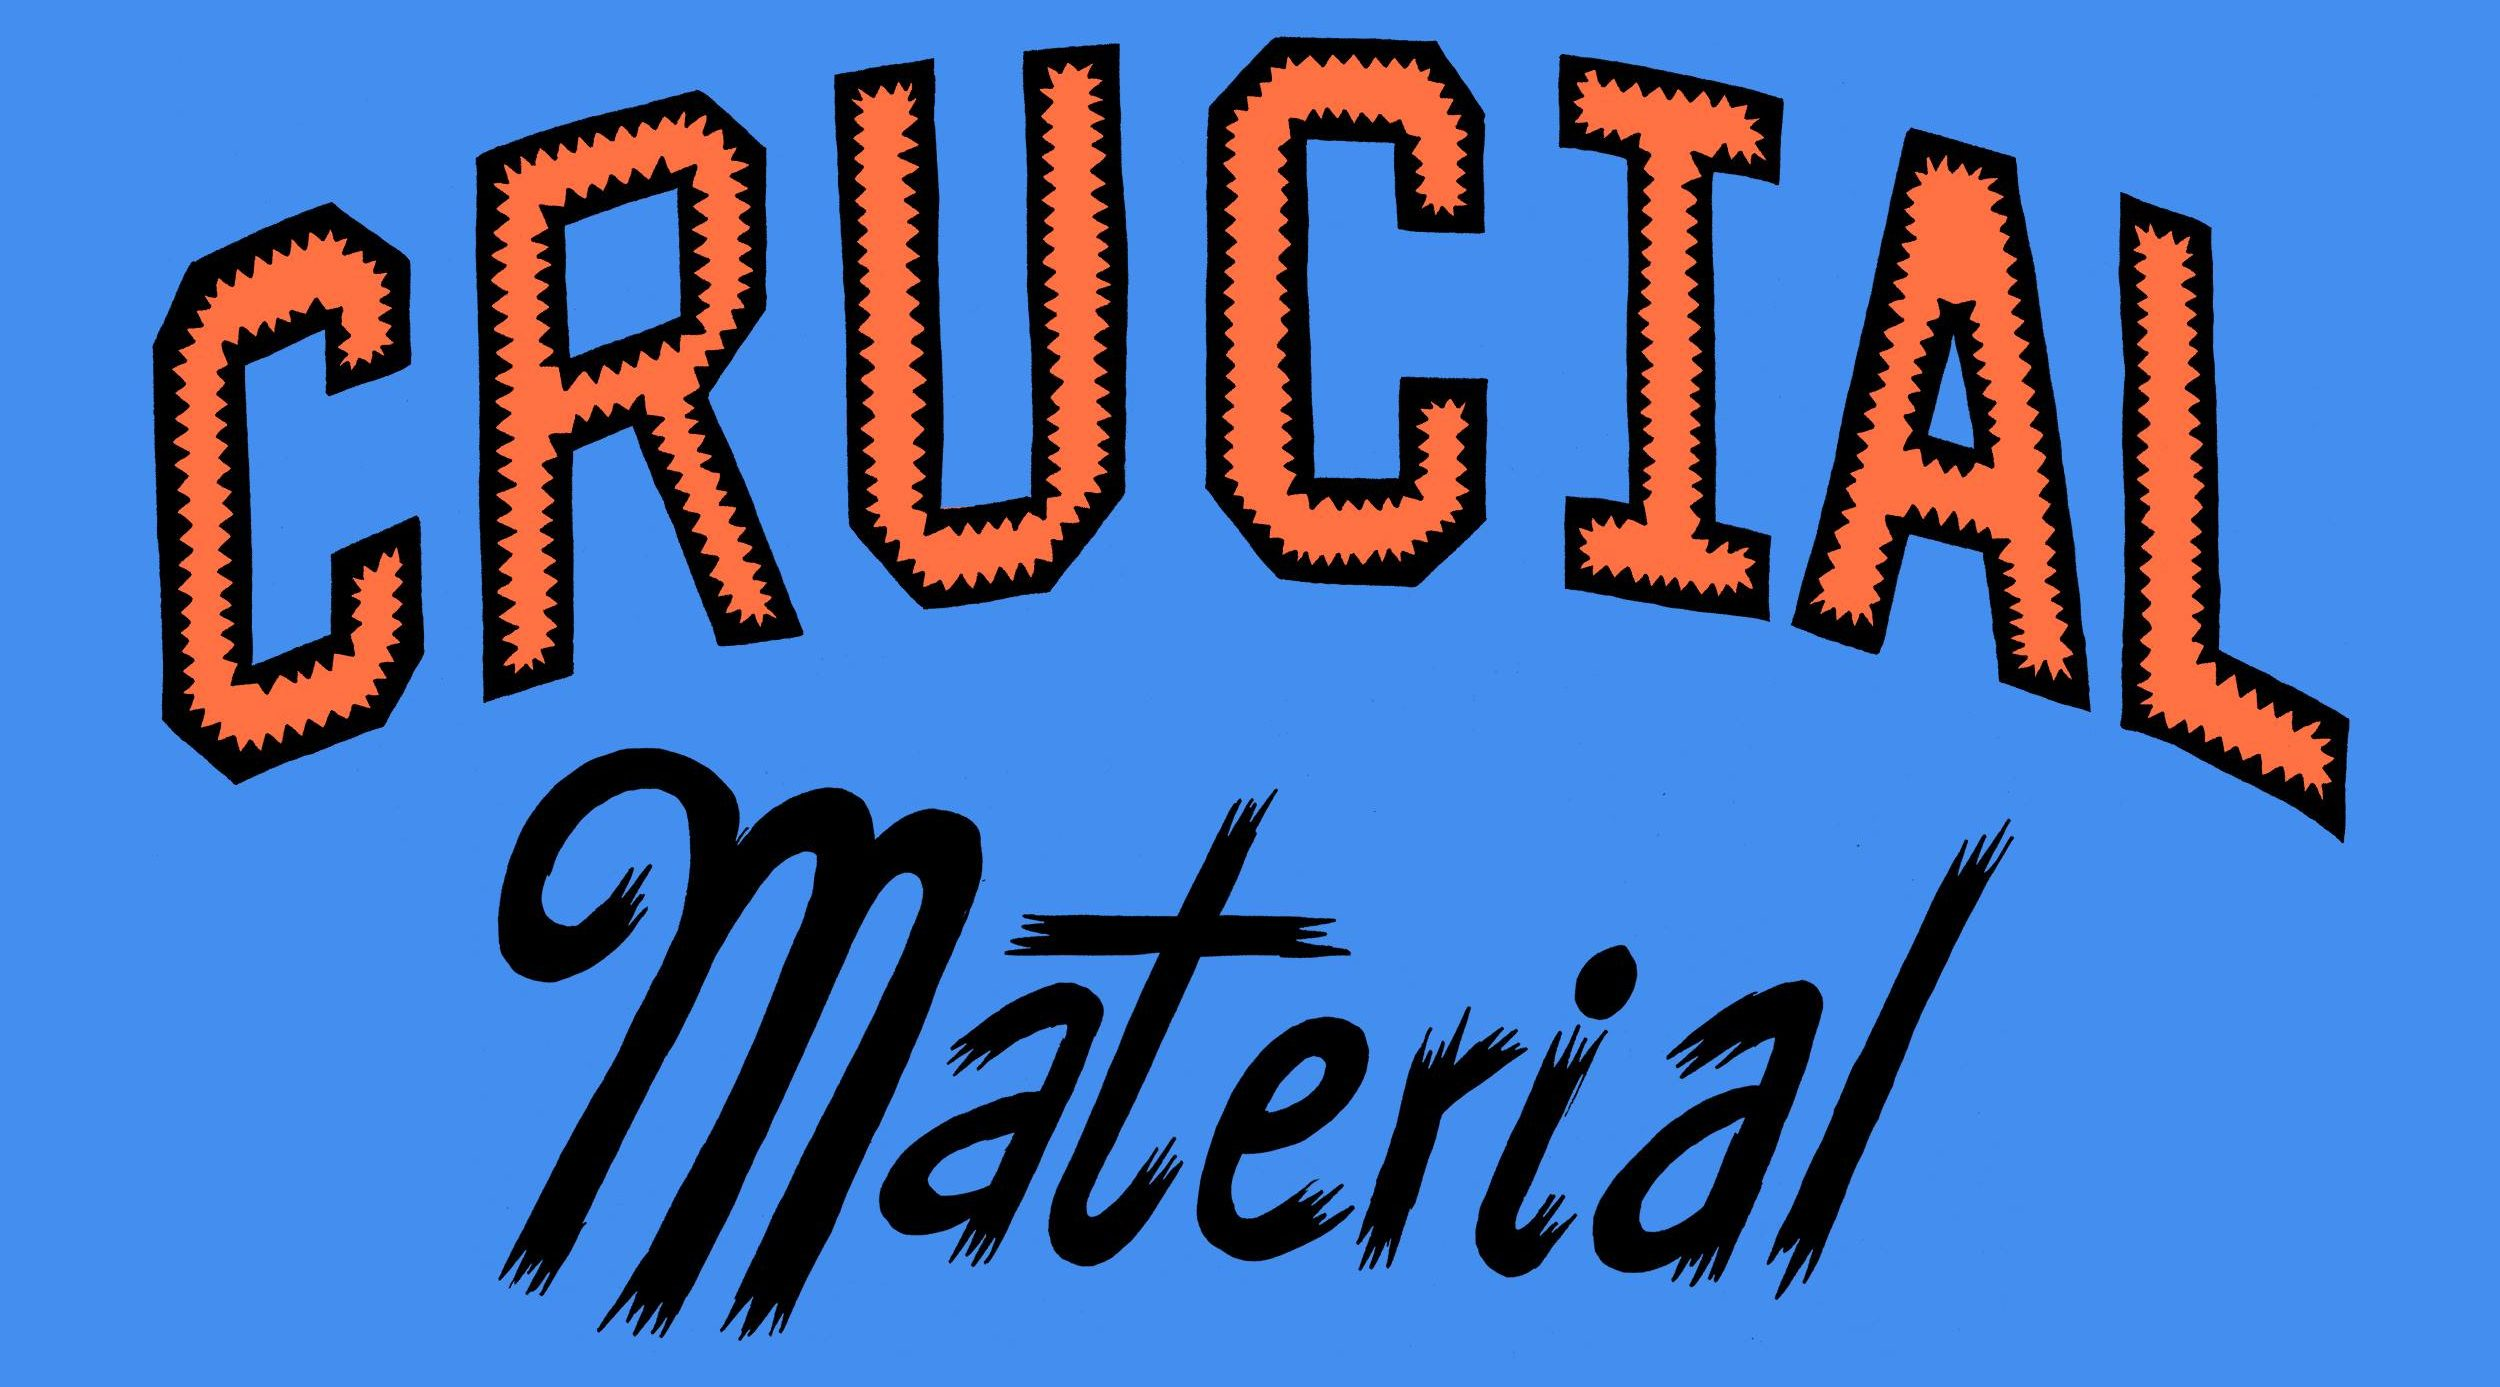 Crucial Material - Best Releases Of The Week (March 9th